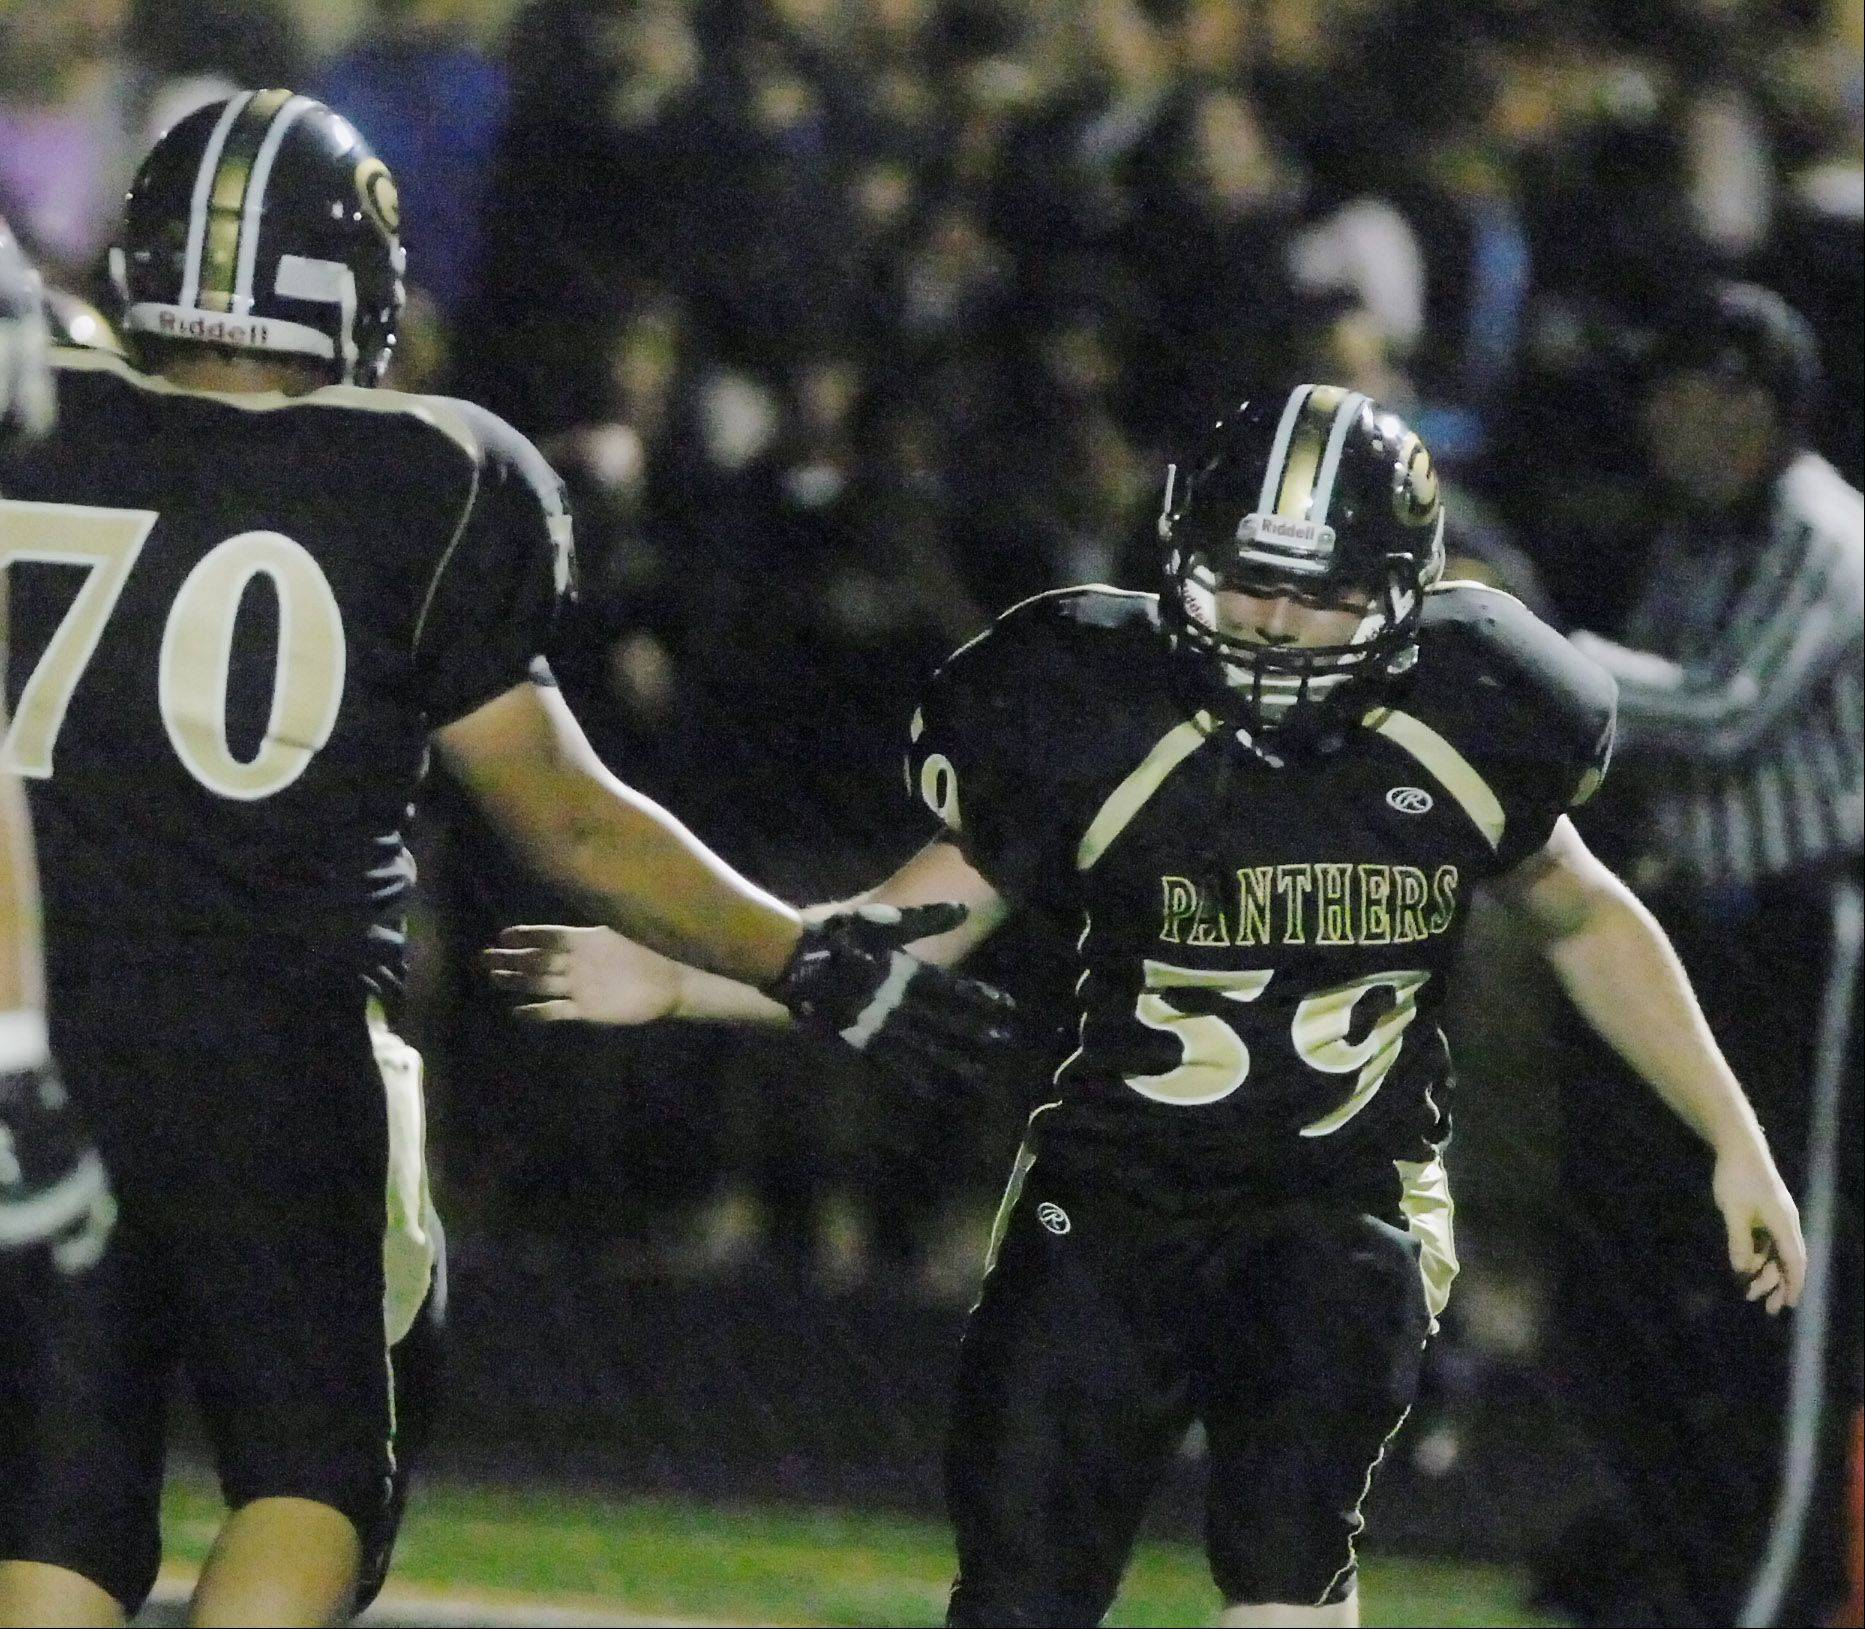 Mitch Siver,left, and Ethan Hernandez of Glenbard North celebrate after a touchdown.